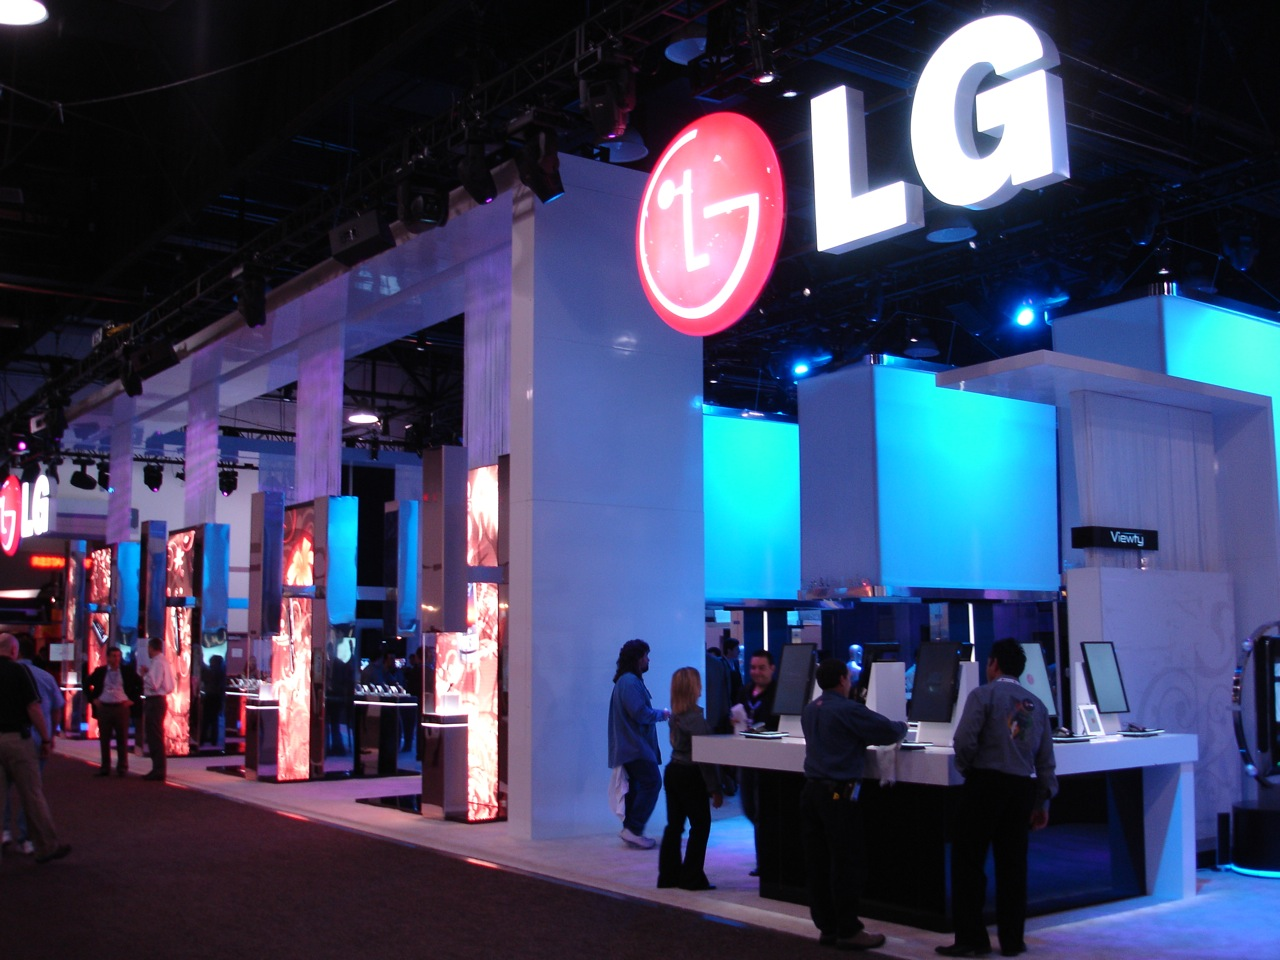 LG Optimus 3D Gets Teased By Dutch Mobile Retailer